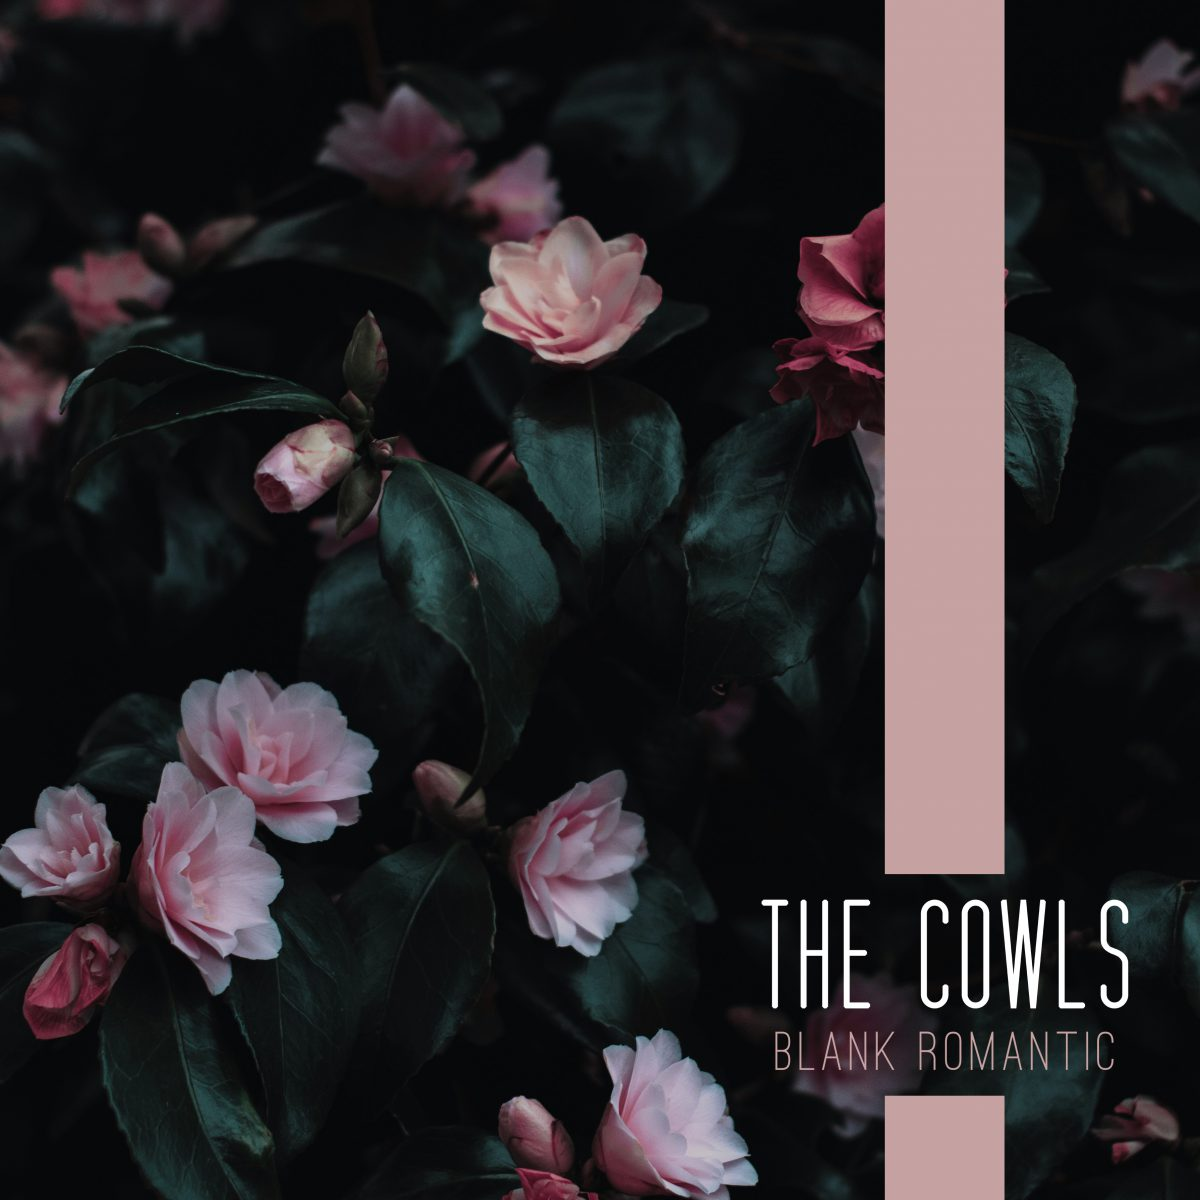 The Cowls – Blank Romantic